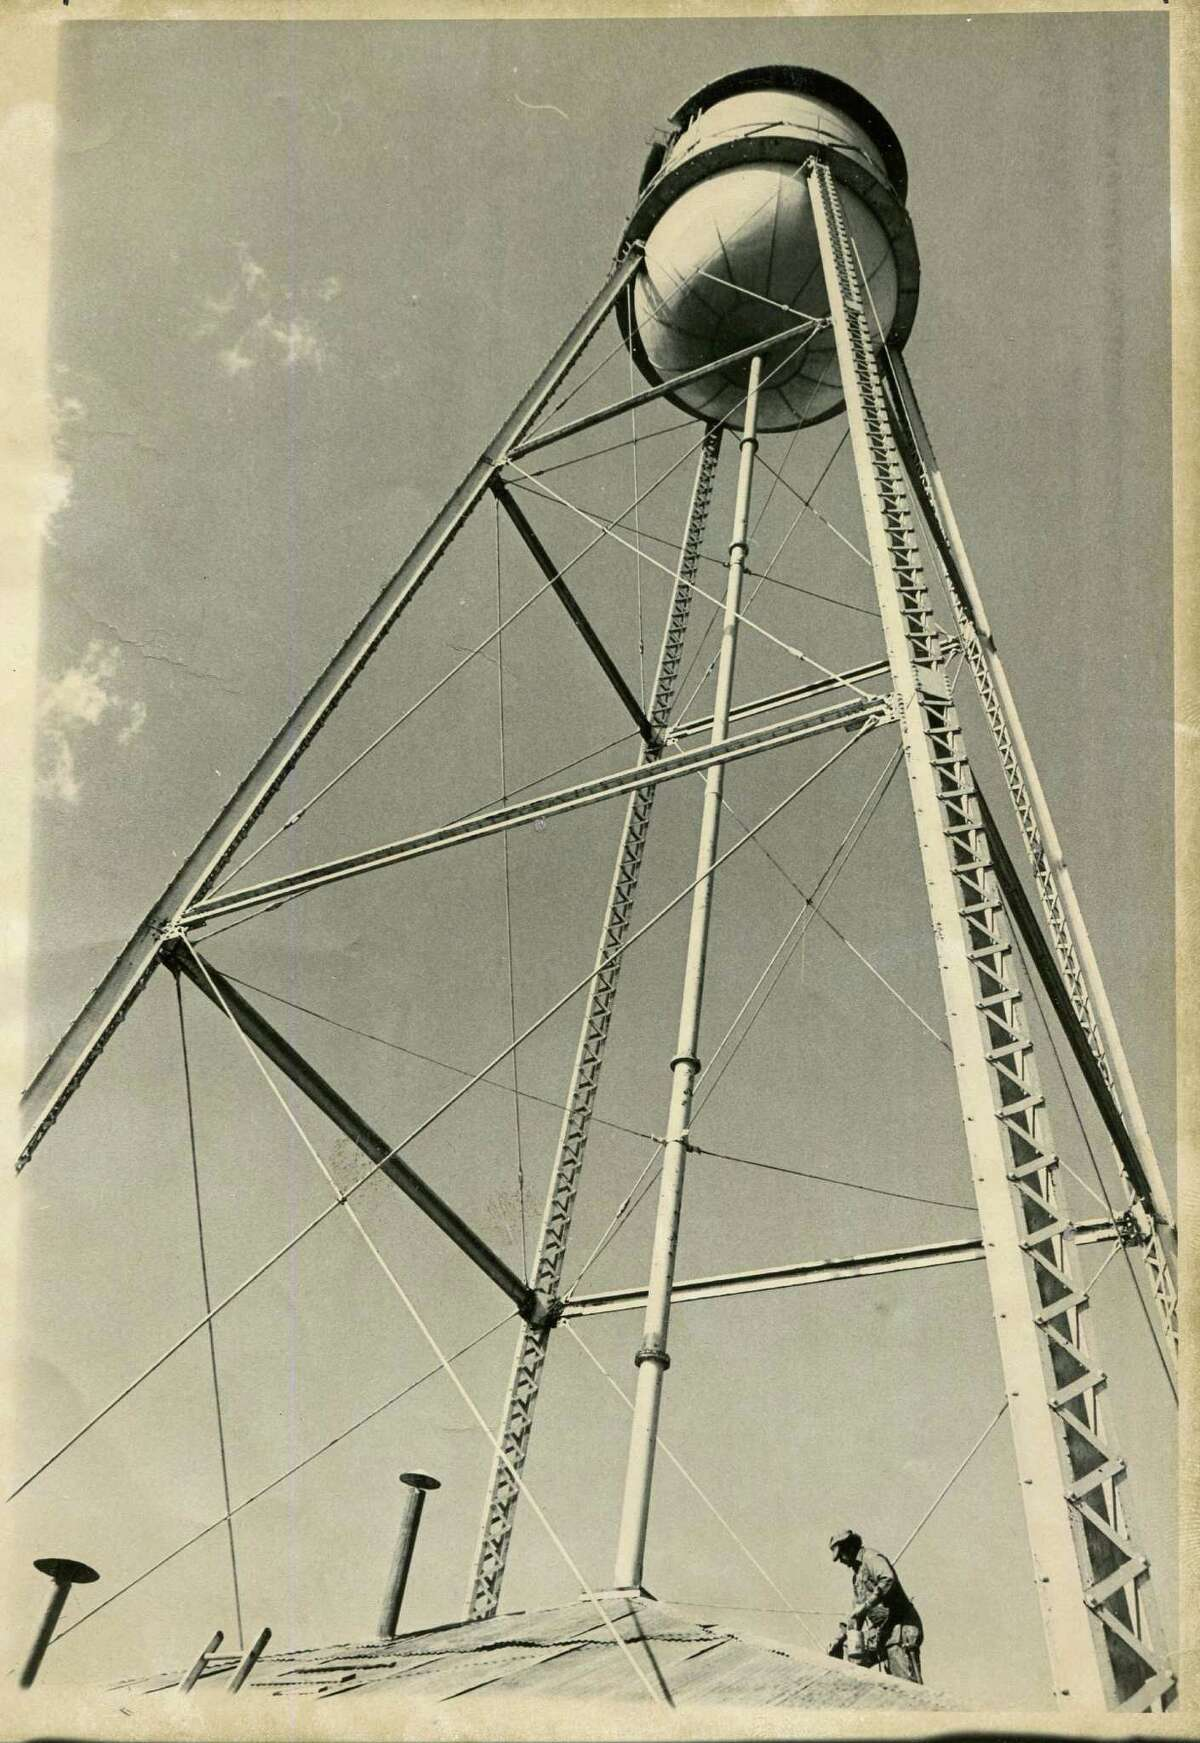 From the 1850s to the late 1910s, the city flourished with farms, stores, mills and a dancehall. The first mercantile store, now the Gruene General Store, was built in 1878. The cotton gin was built soon after. Shown here is the Gruene water tower photographed on March 21, 1975.